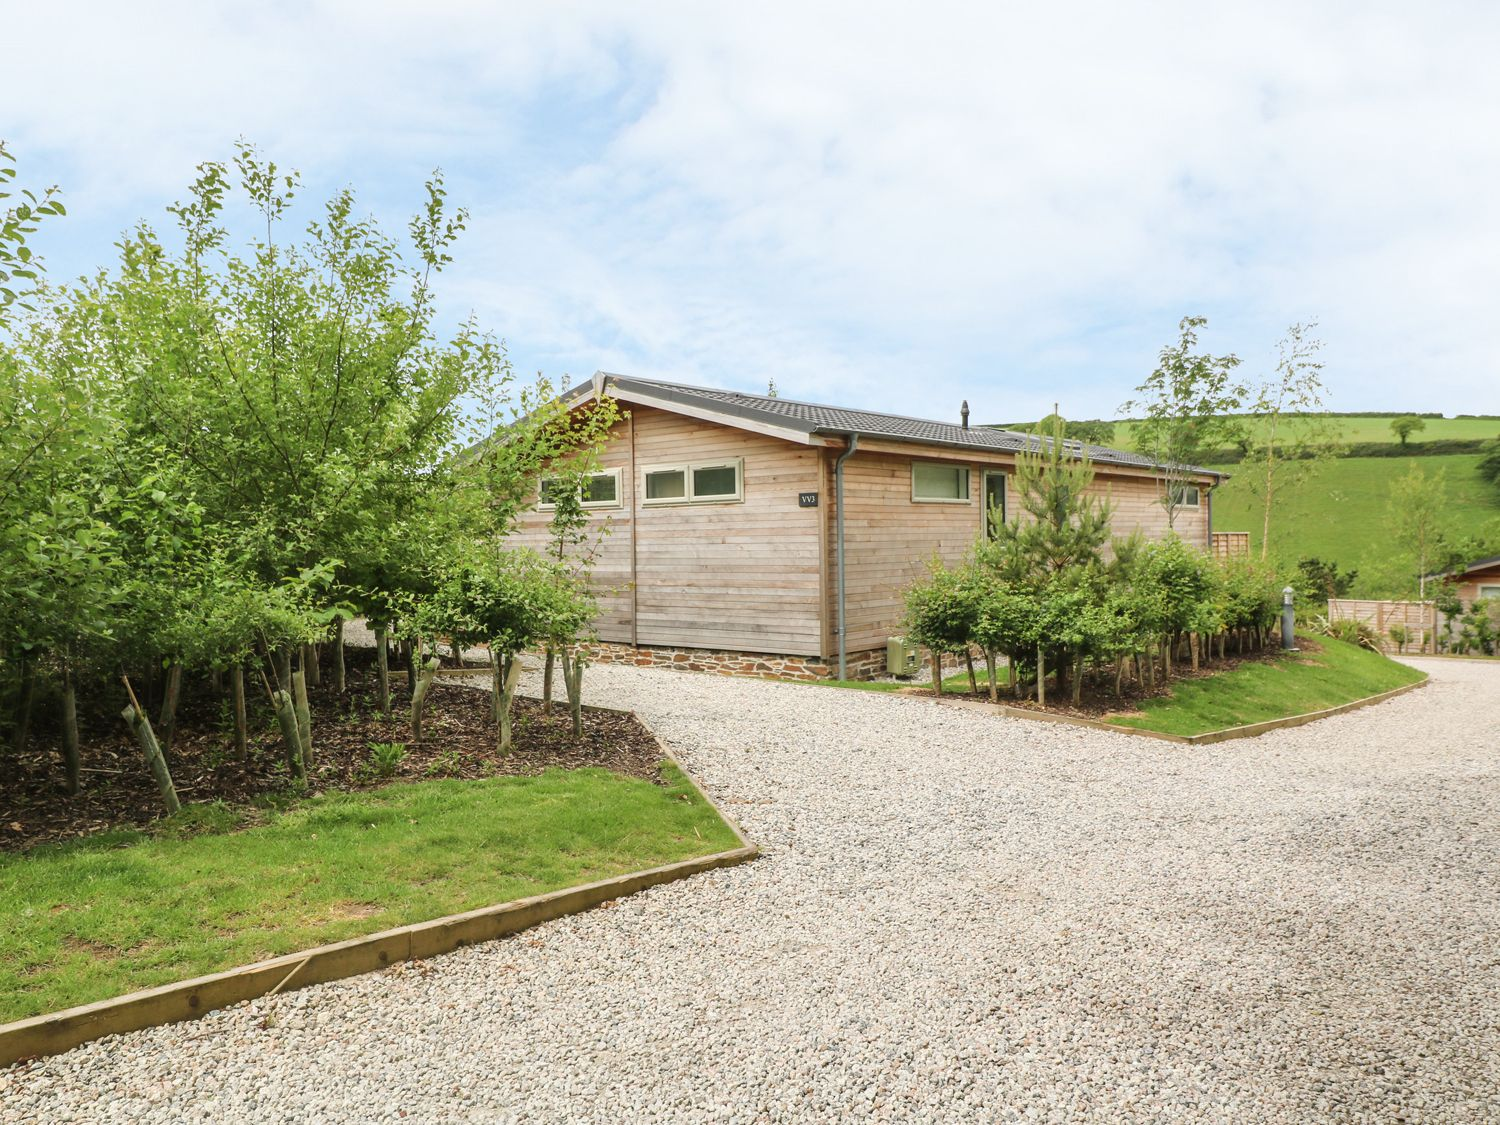 3 Valley View - Cornwall - 1010020 - photo 1